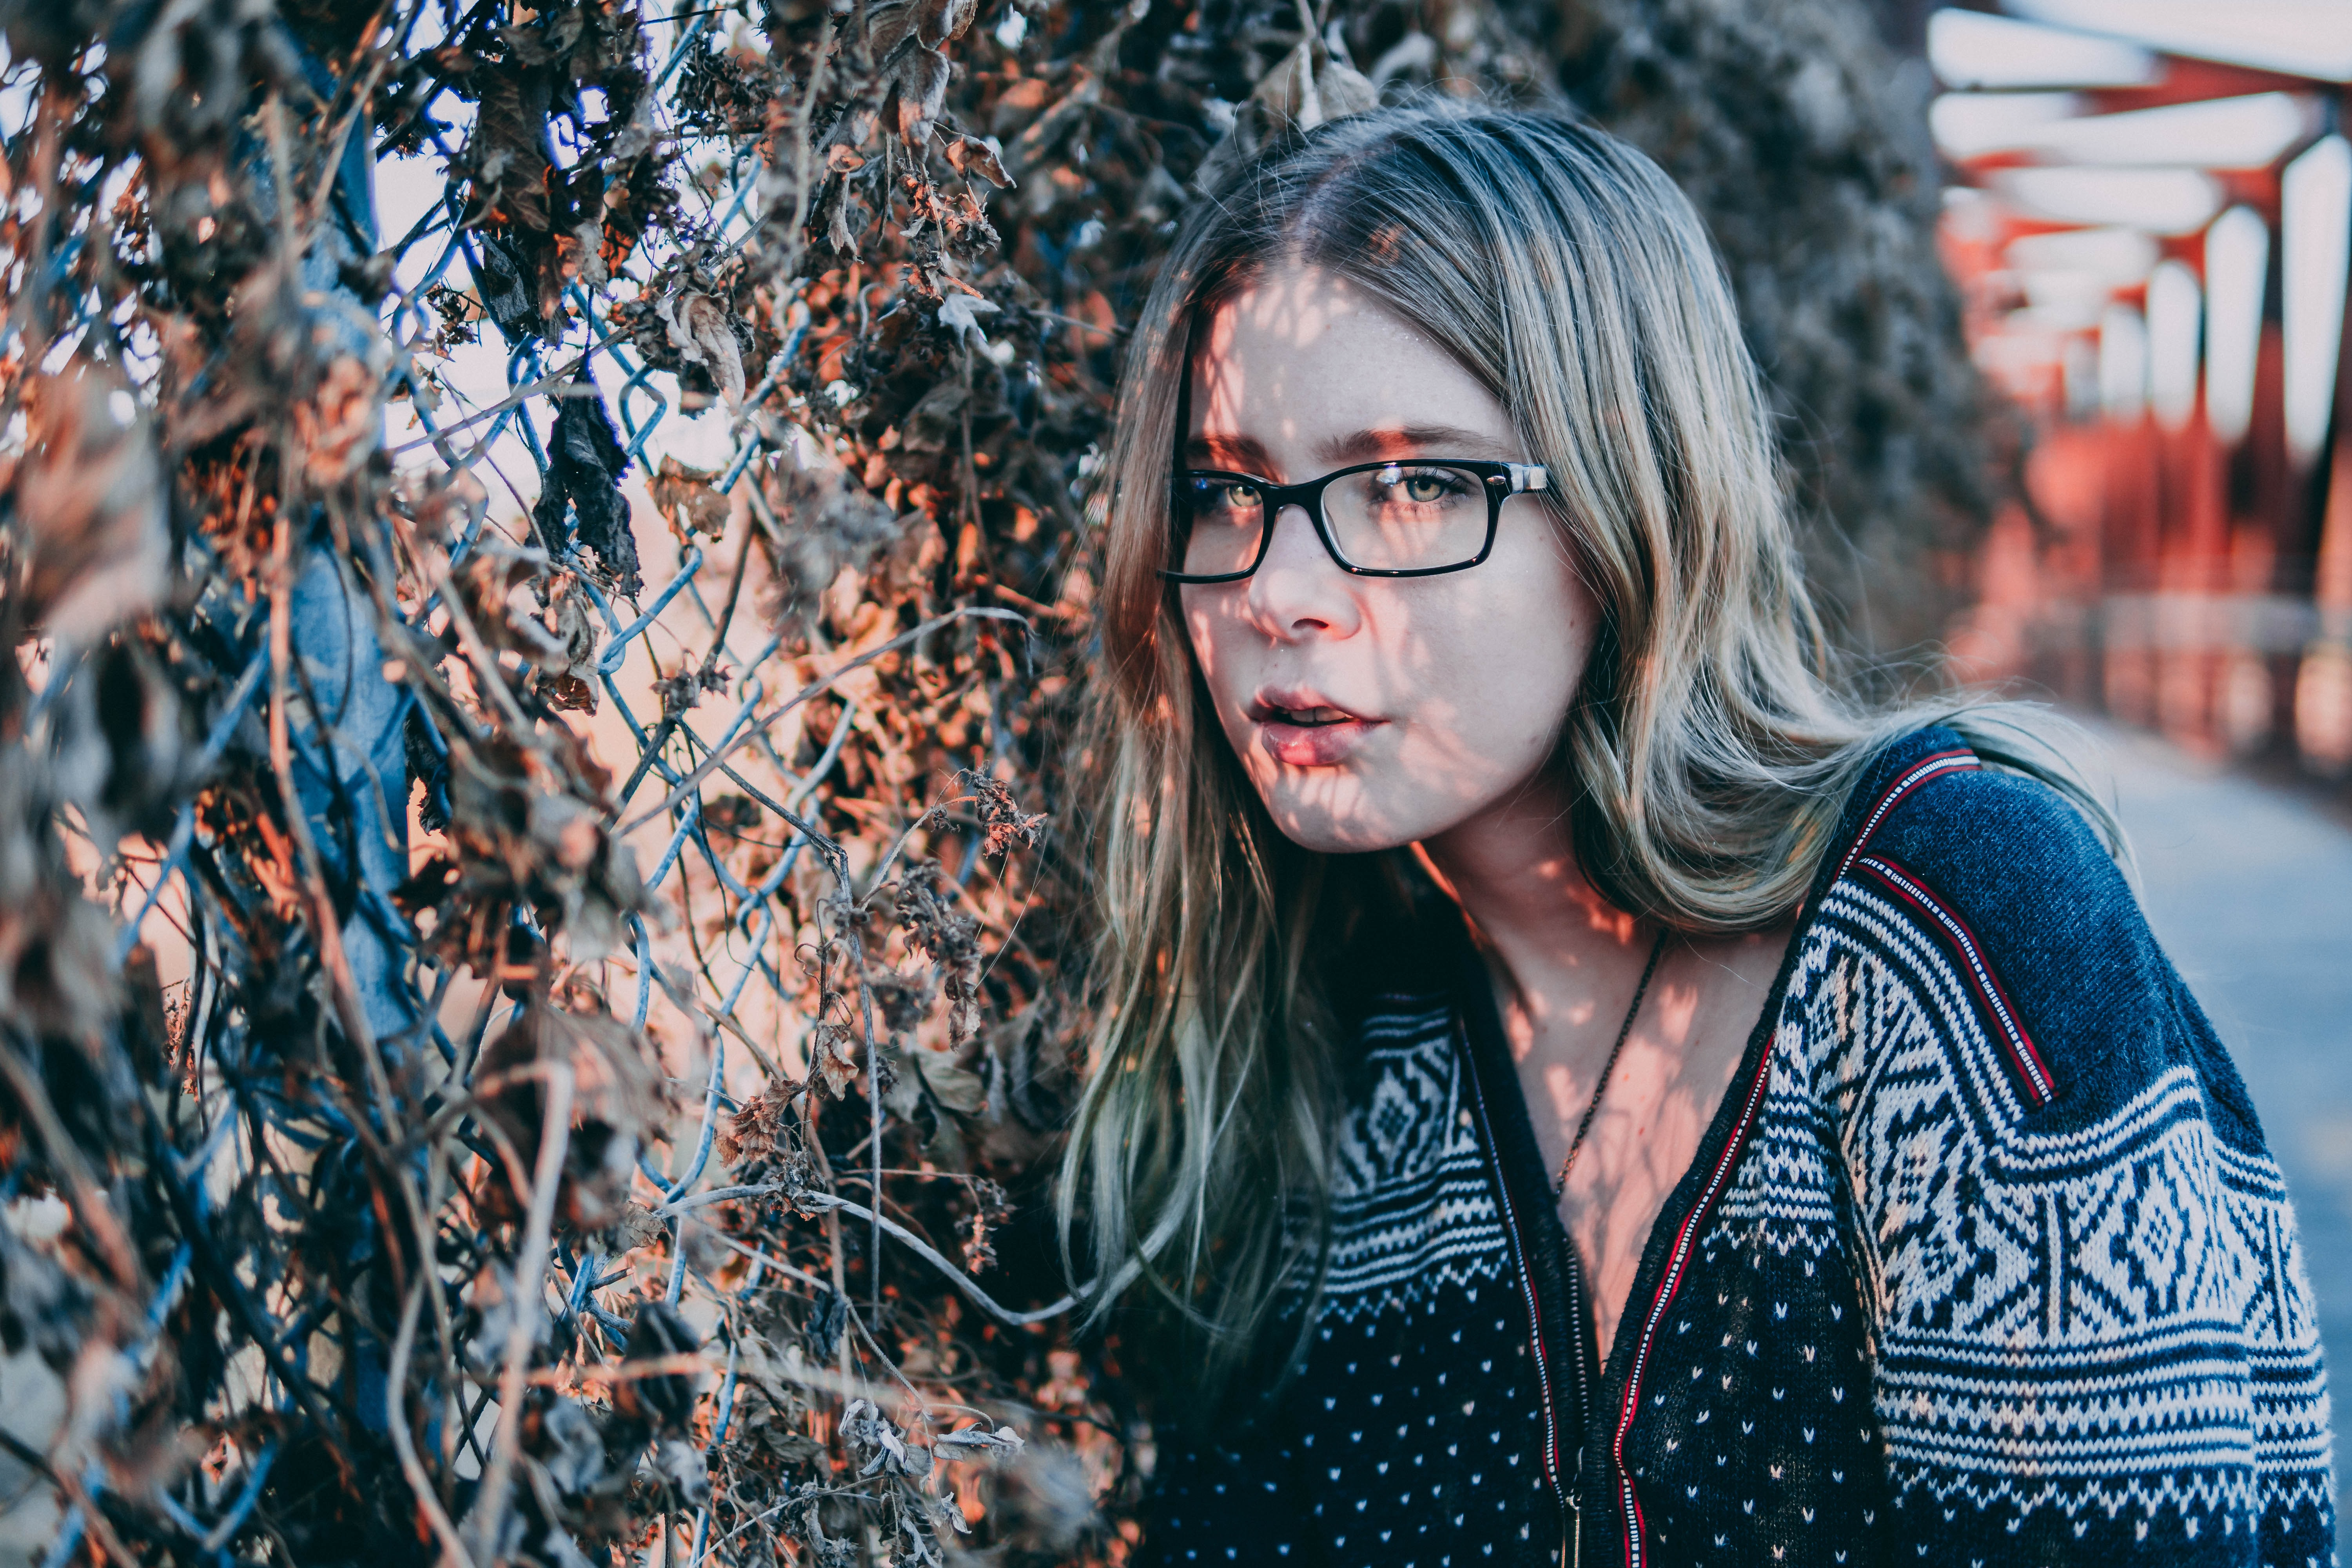 lights reflecting on woman's face standing beside green plant